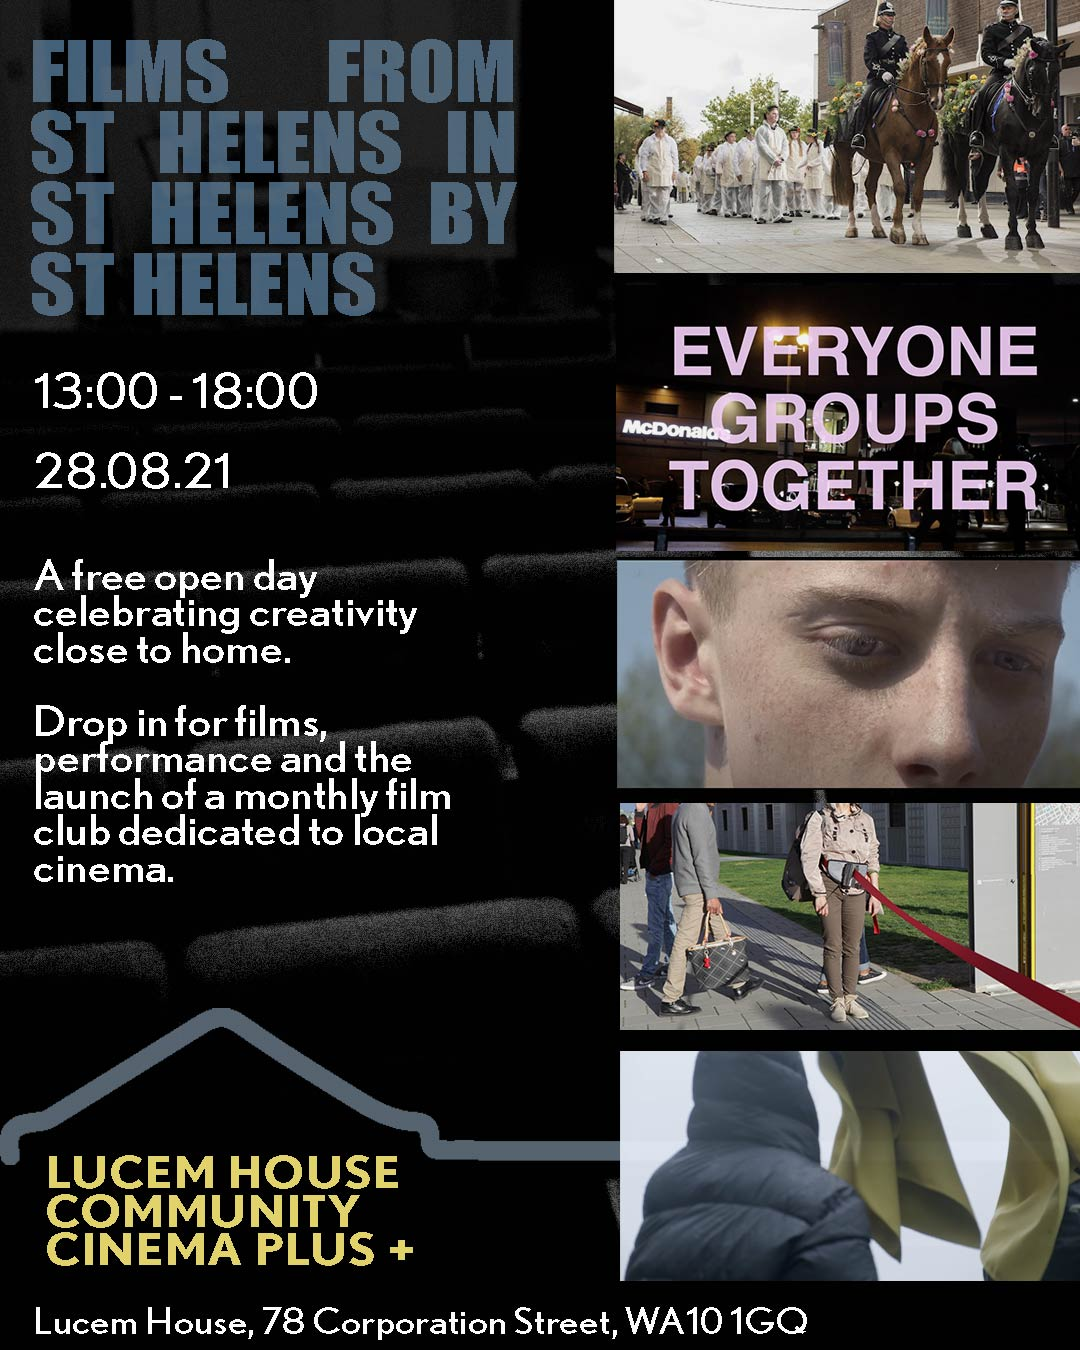 Lucem House: Film from St Helens in St Helens by St Helens